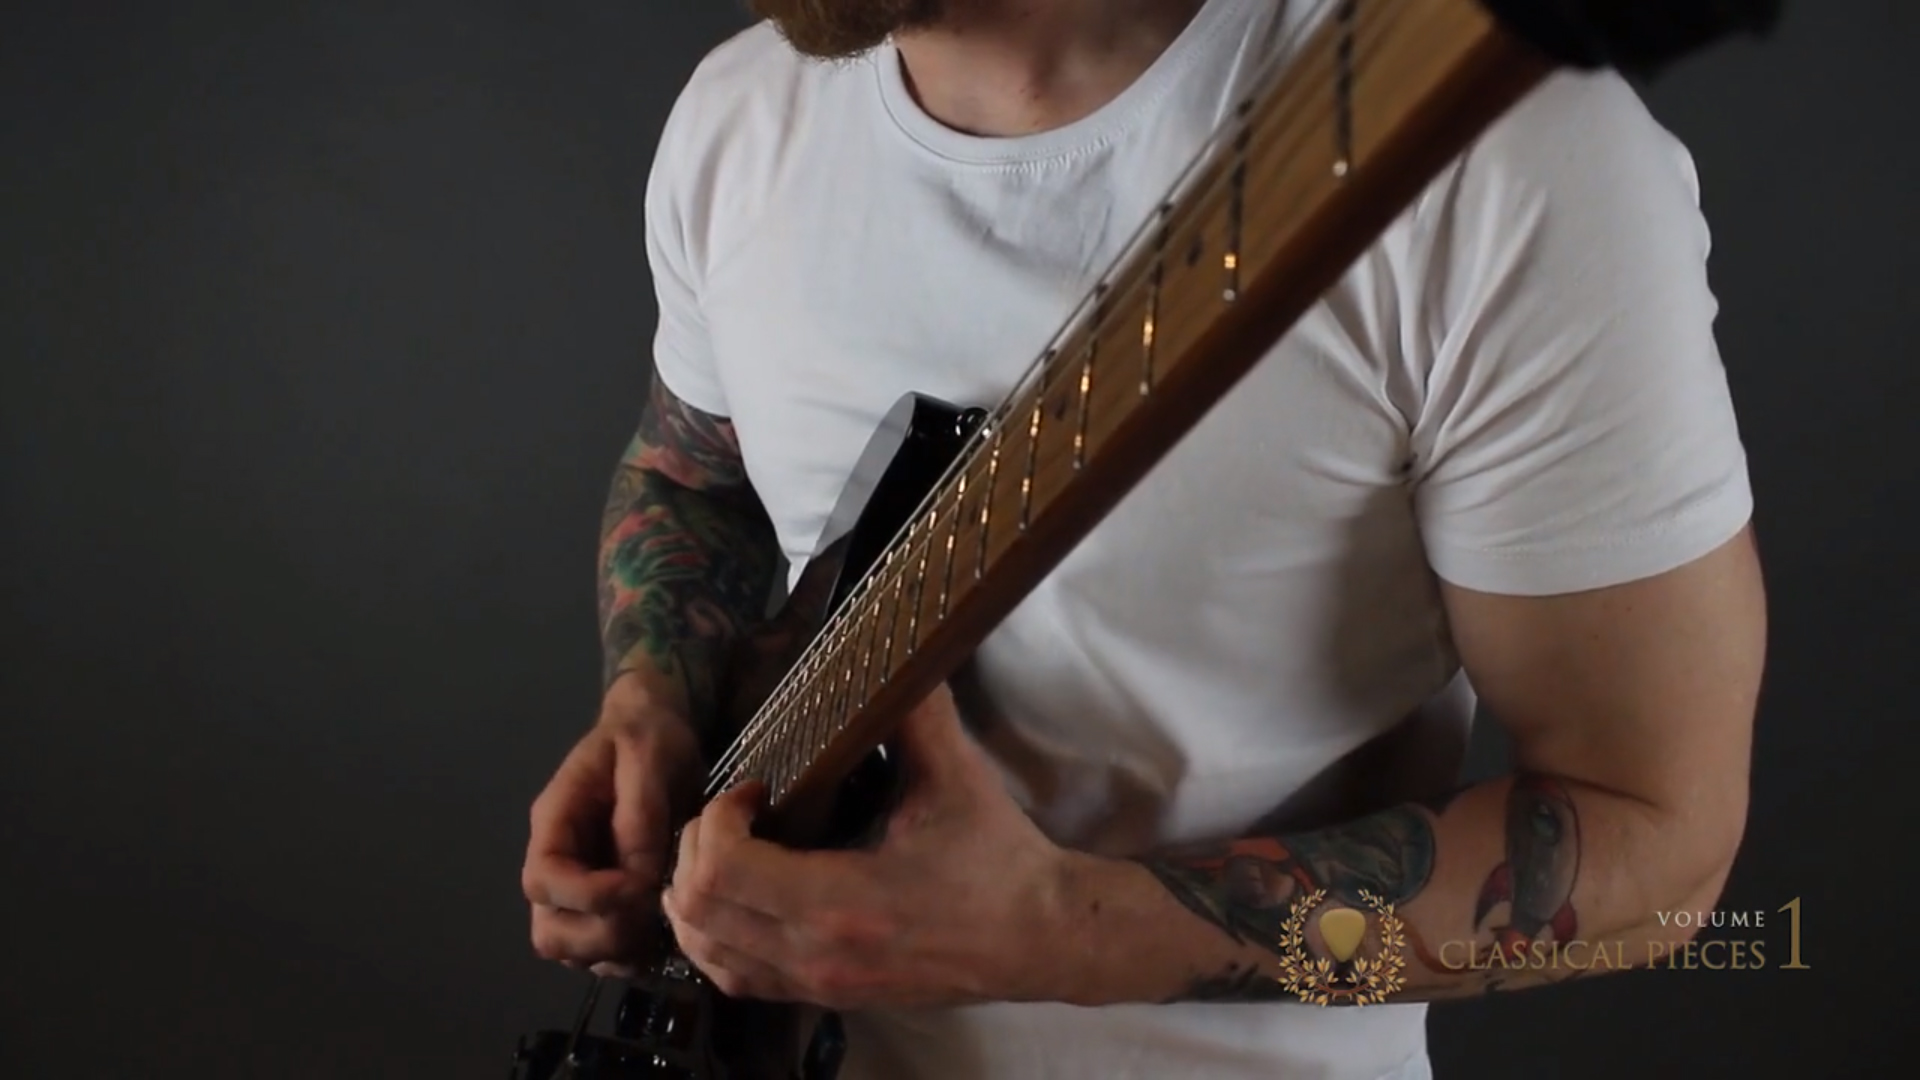 CLASSICAL PIECES | GUITARMASTERY